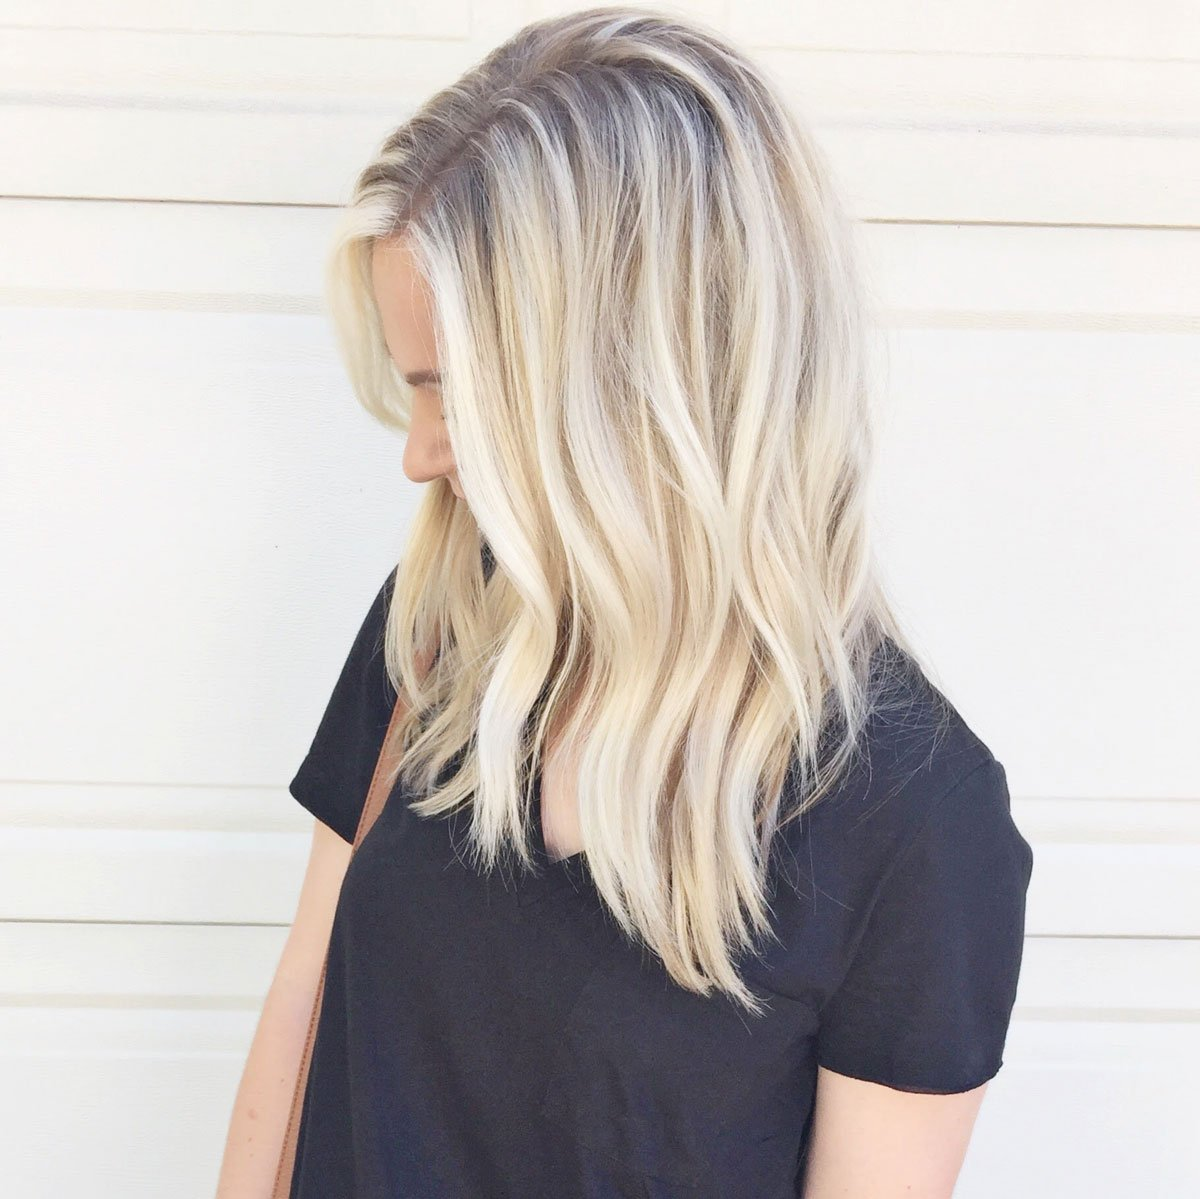 Loose effortless waves